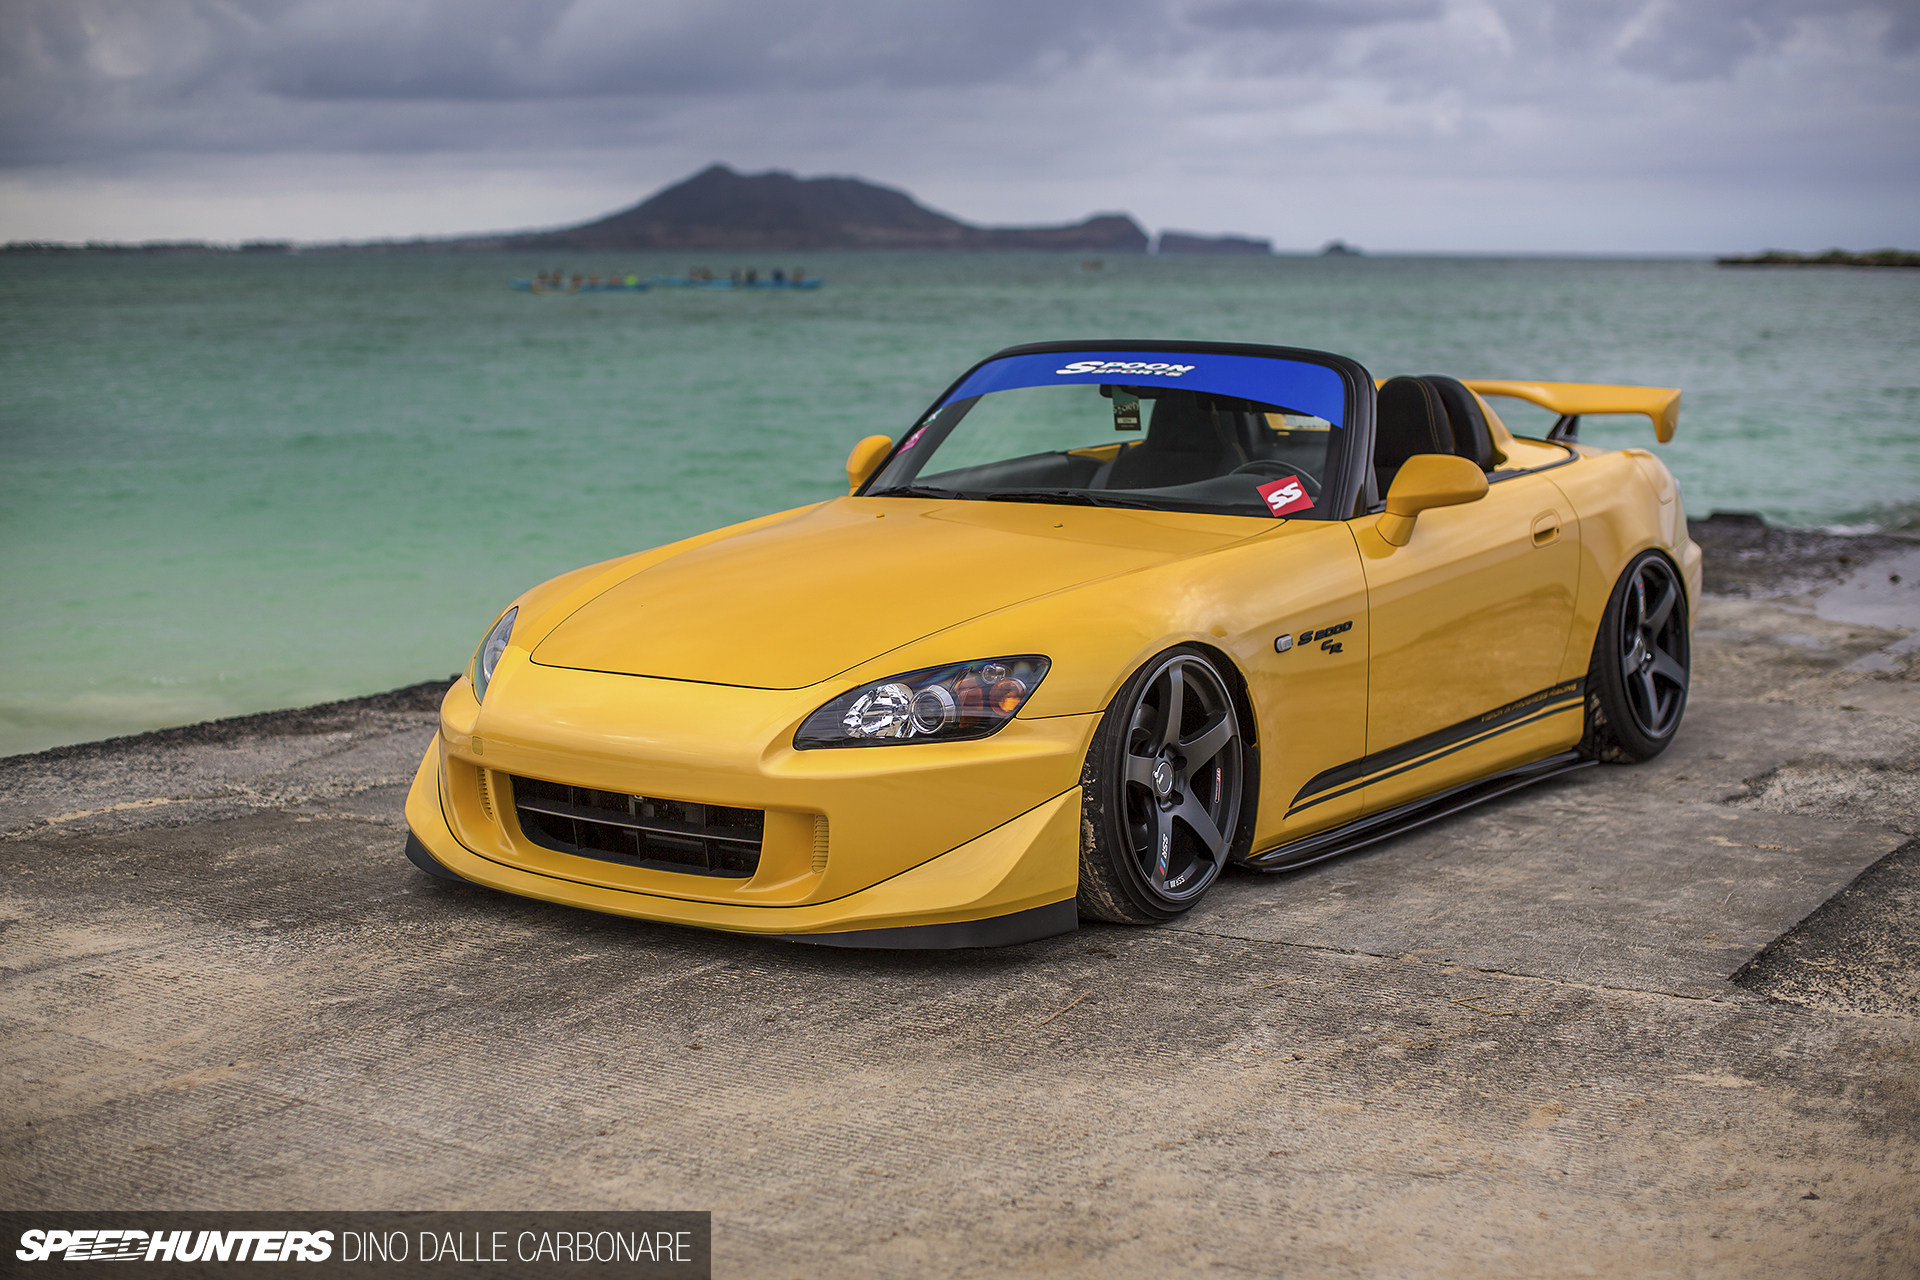 Modified S2000 >> 18 Inch Archives - Page 9 of 9 - MPPSOCIETY